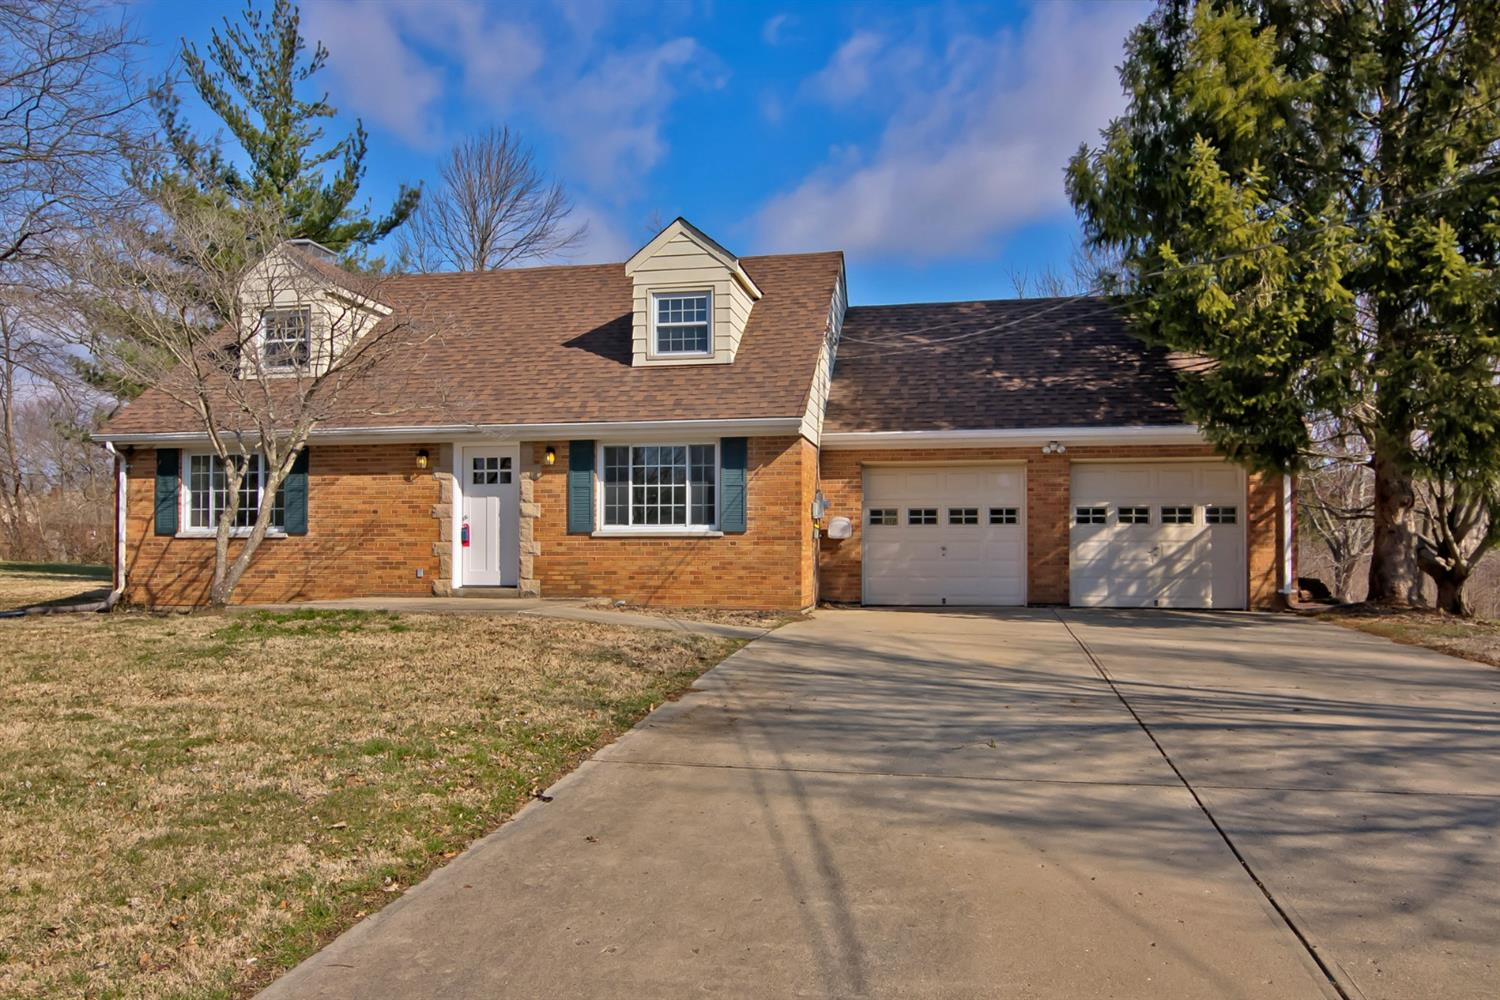 4550 Manover Ln Colerain Twp.West, OH